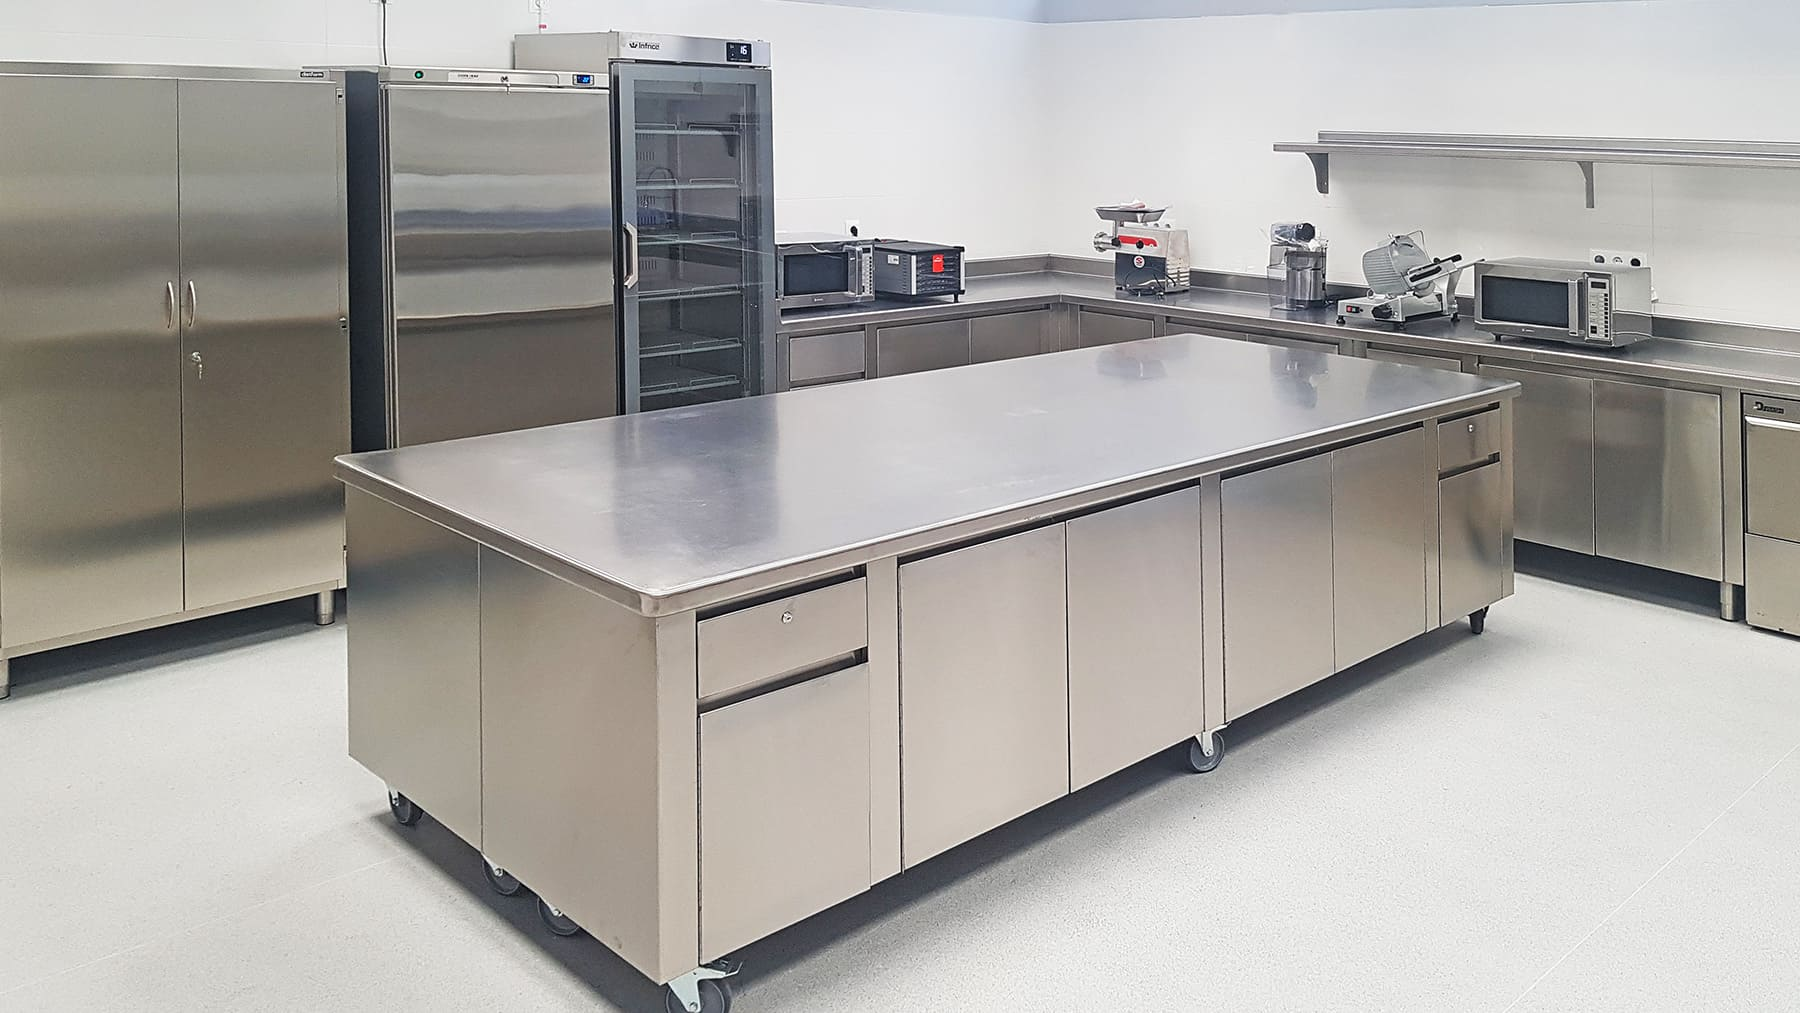 Equipamiento-Cocina-Industrial-Profesional-Universidad-Europea-de-Madrid - -SERHS-Projects